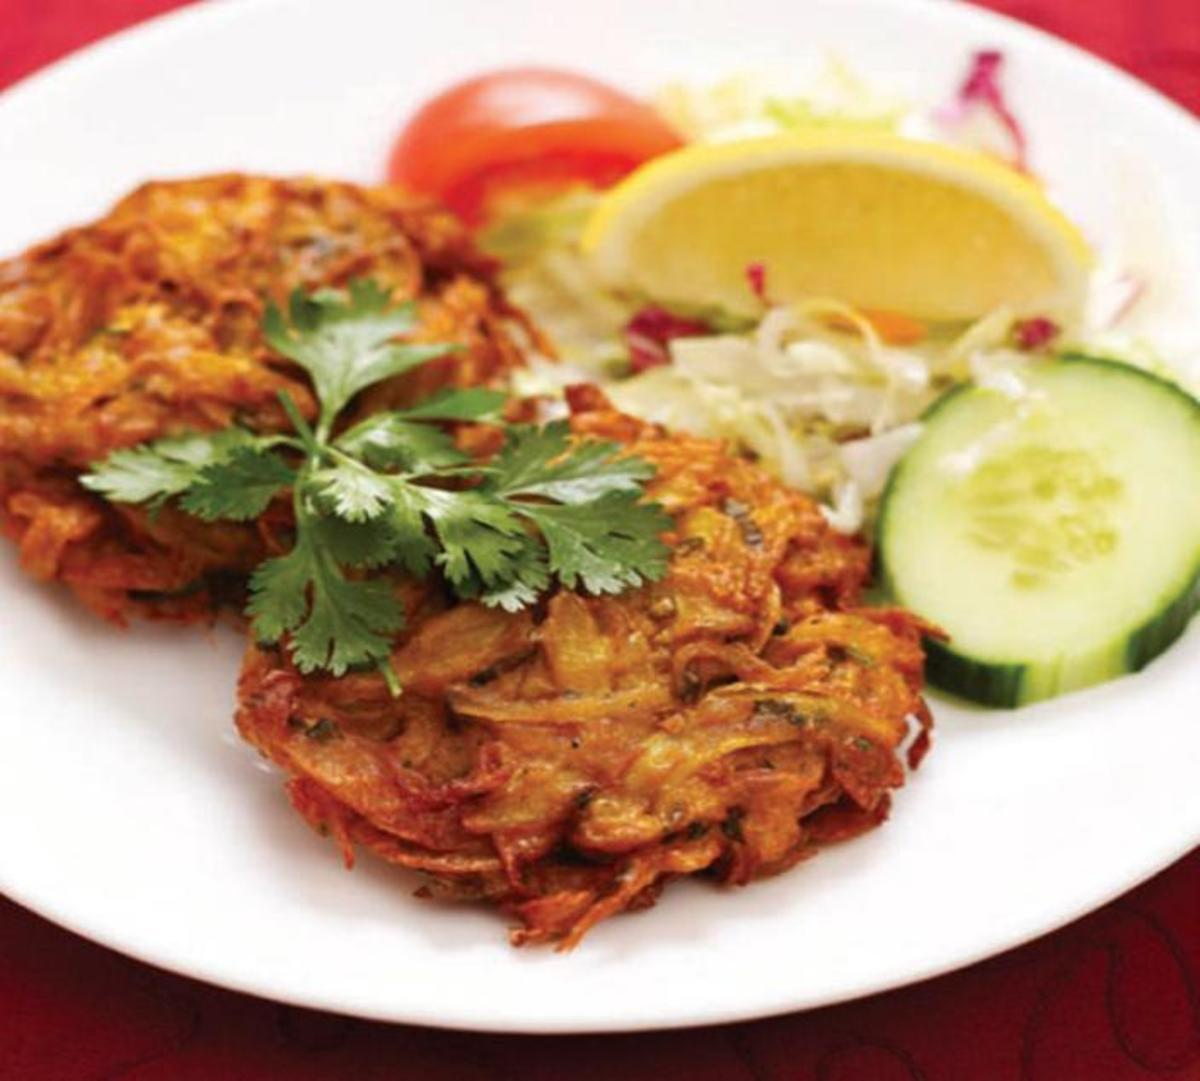 How to make an onion bhaji. A great Indian starter plus delicious mint sauce and mango chutney recipes.